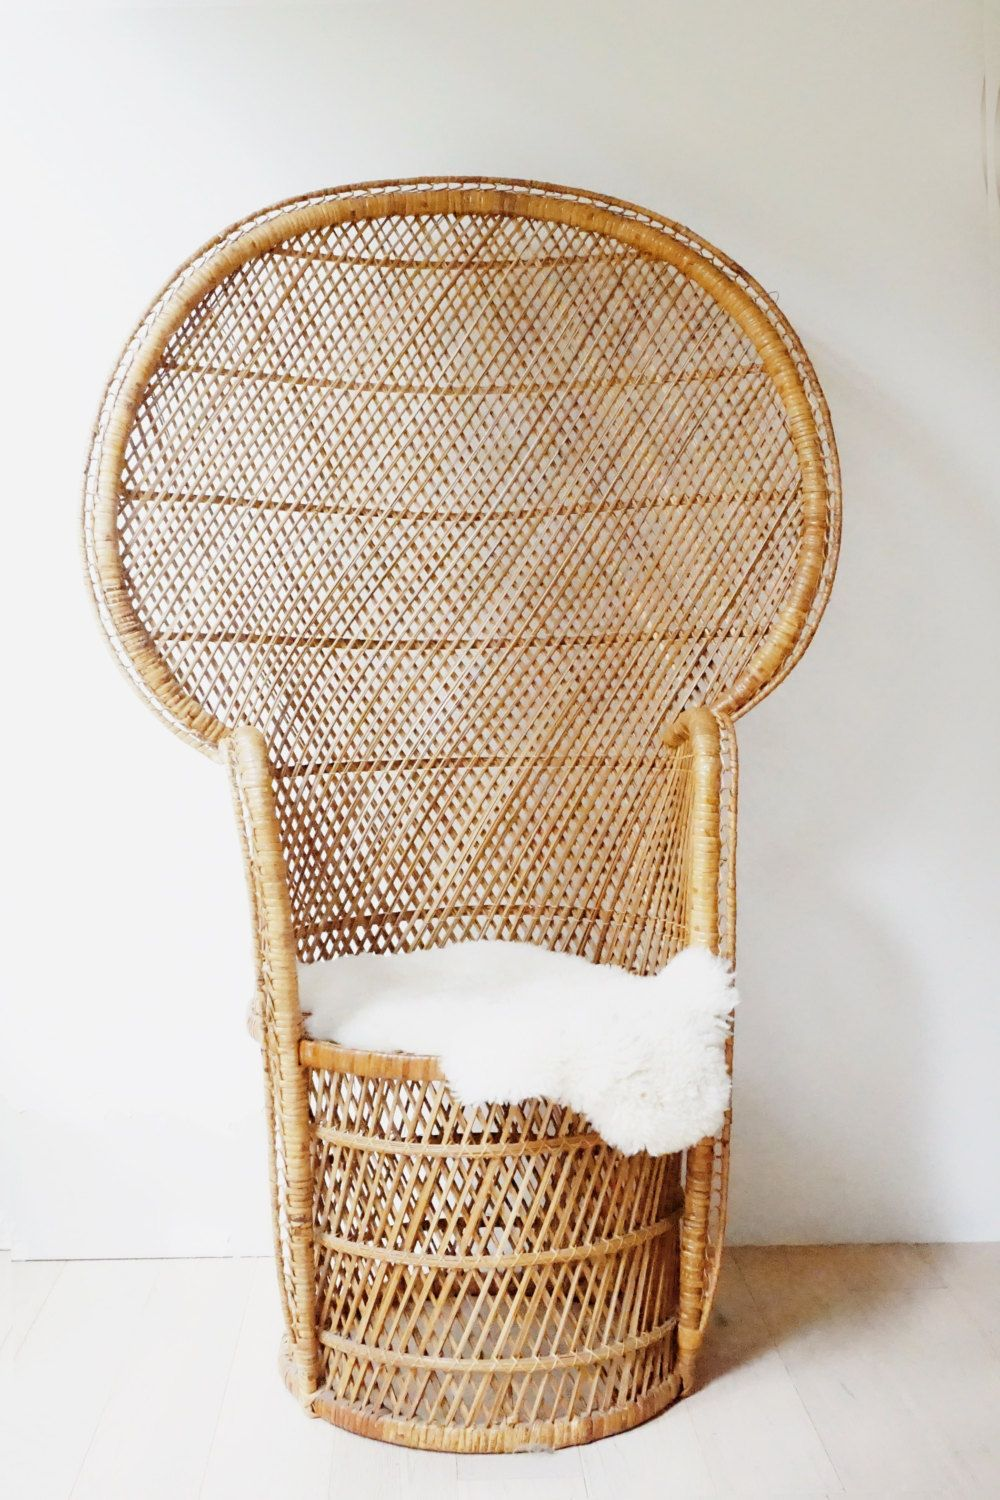 Vintage Peacock Chair Contemporary Rocking Chairs Rattan Full Size Woven Handmade 70s Wicker Large Bohemian Style Peackock Local Pick Up Only